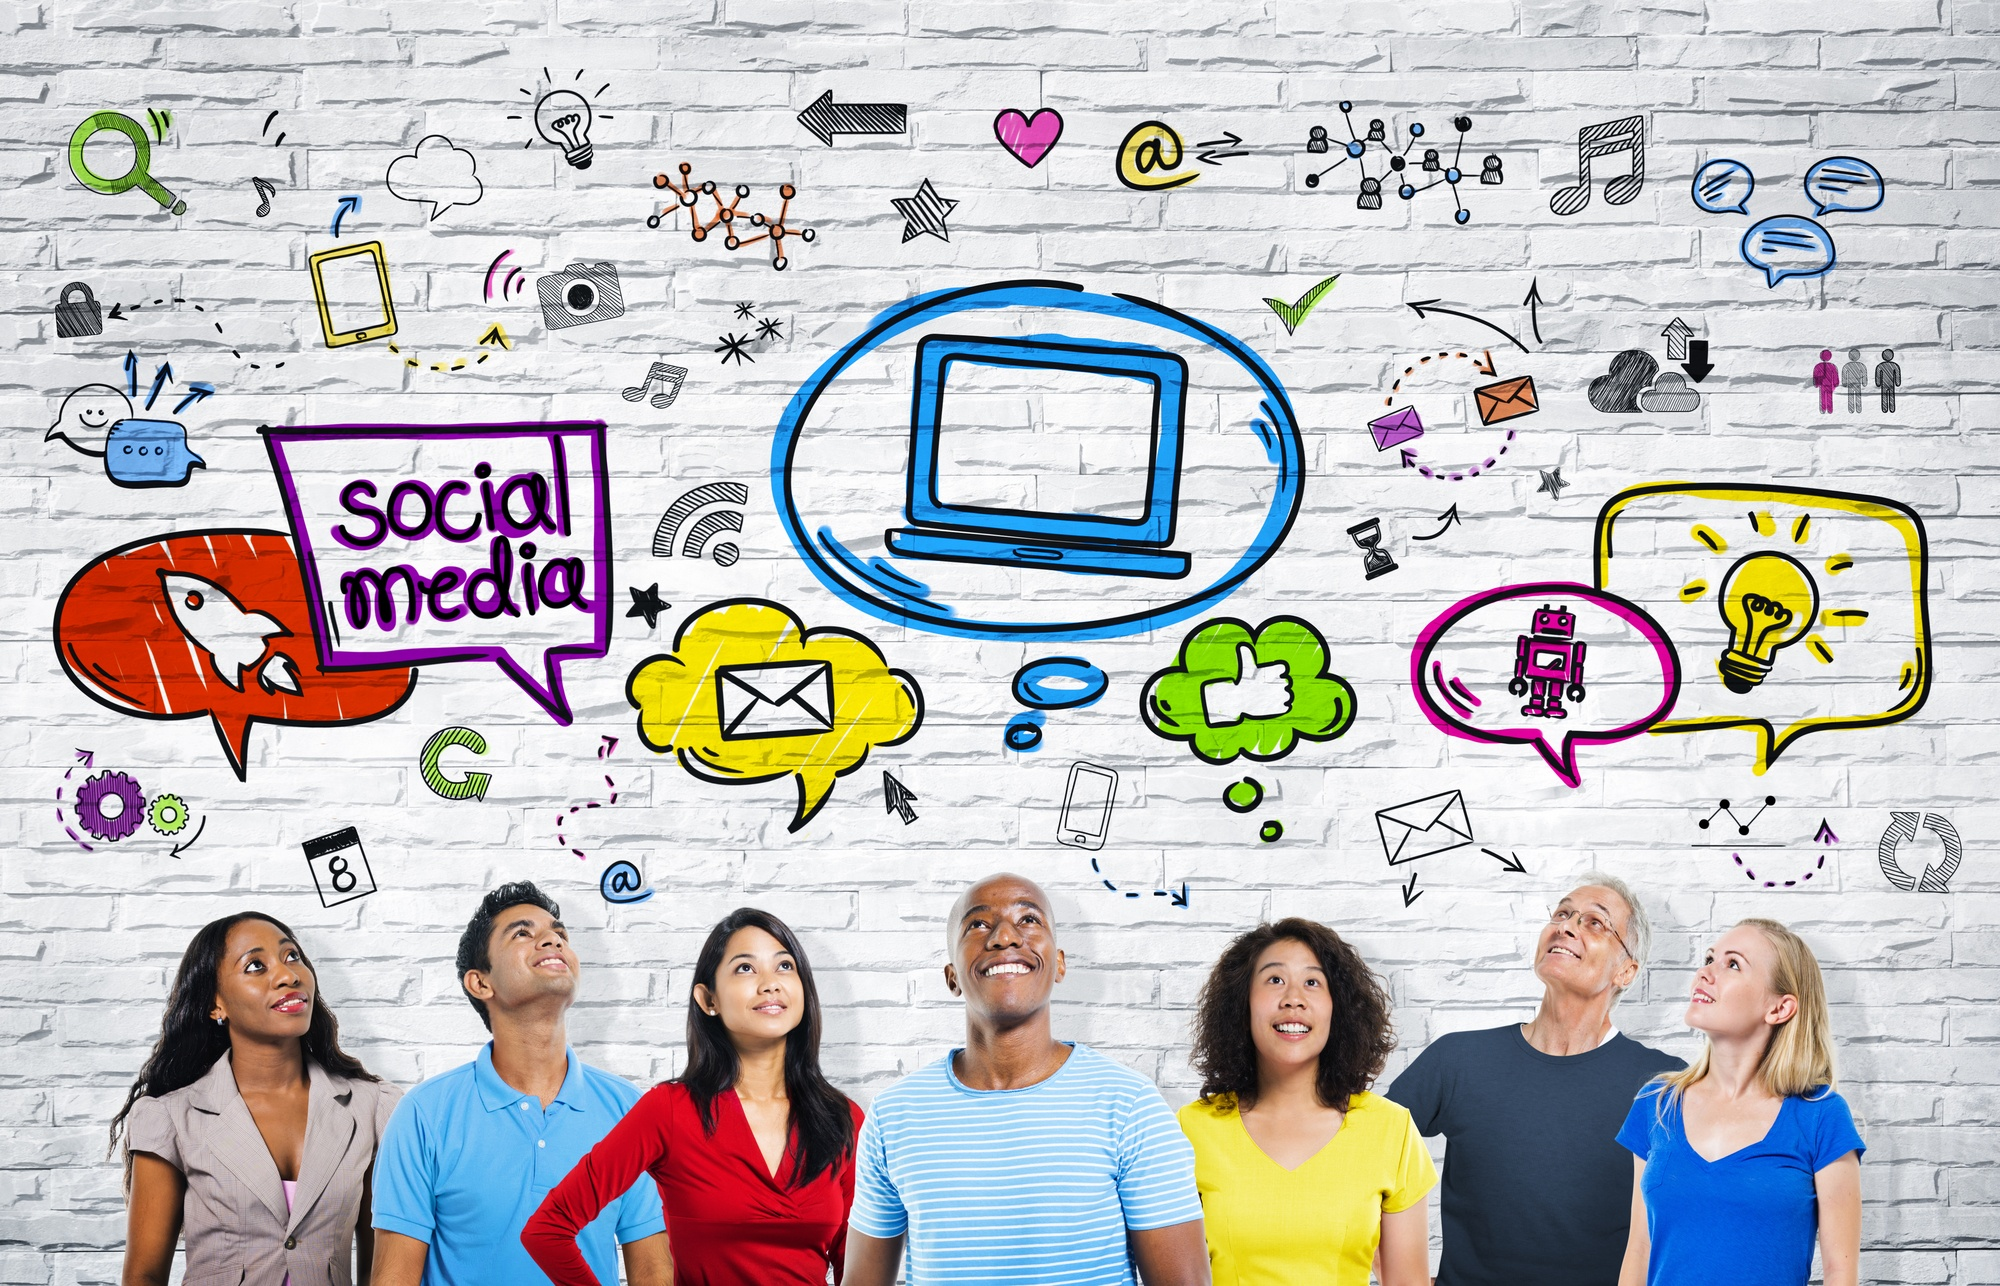 Social Media Marketing Tips from 20 Small Businesses (Part 2)